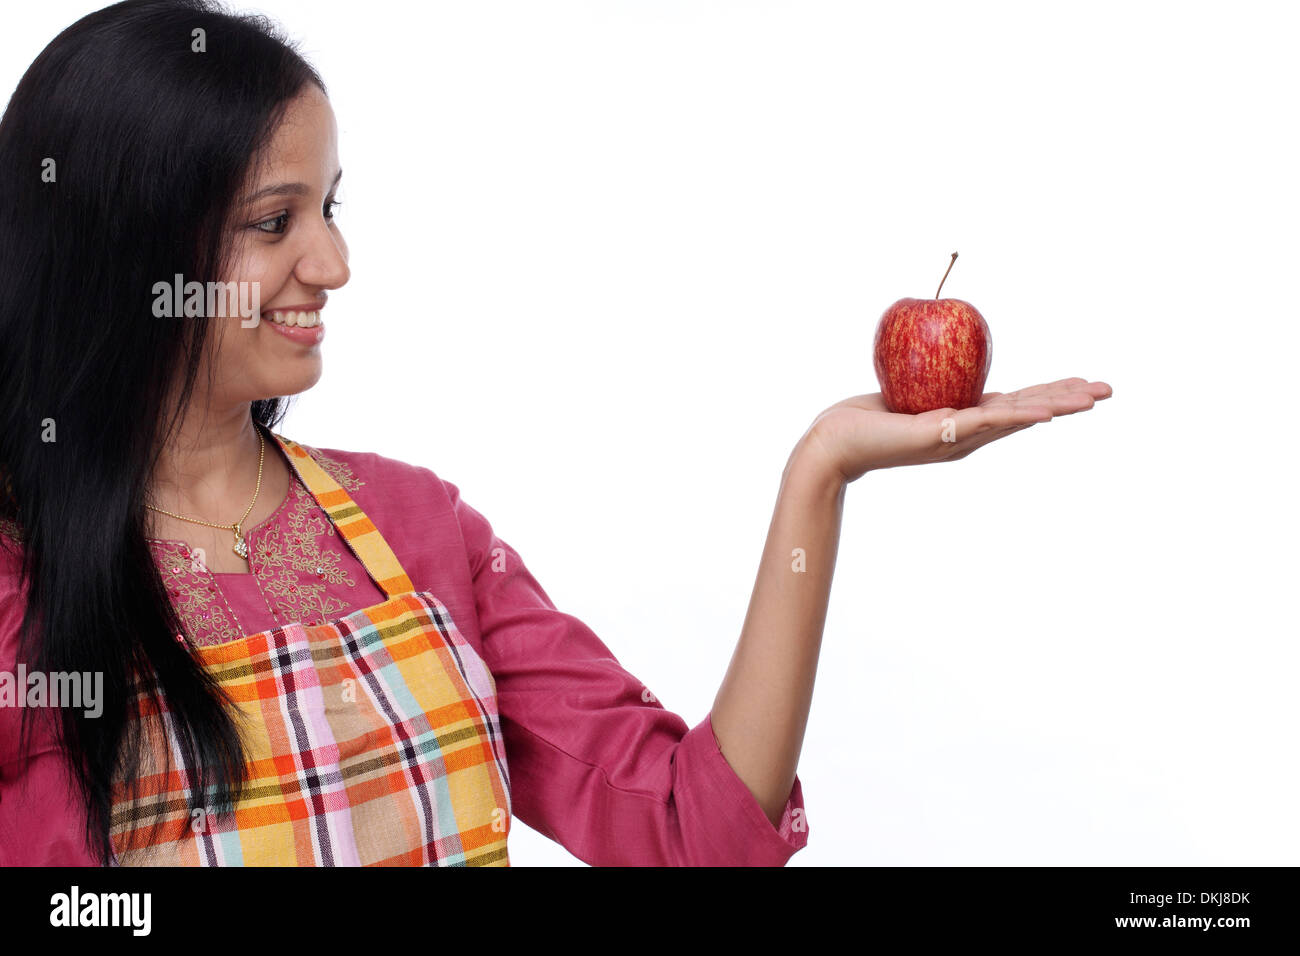 Happy young woman holding red apple against white background - Stock Image